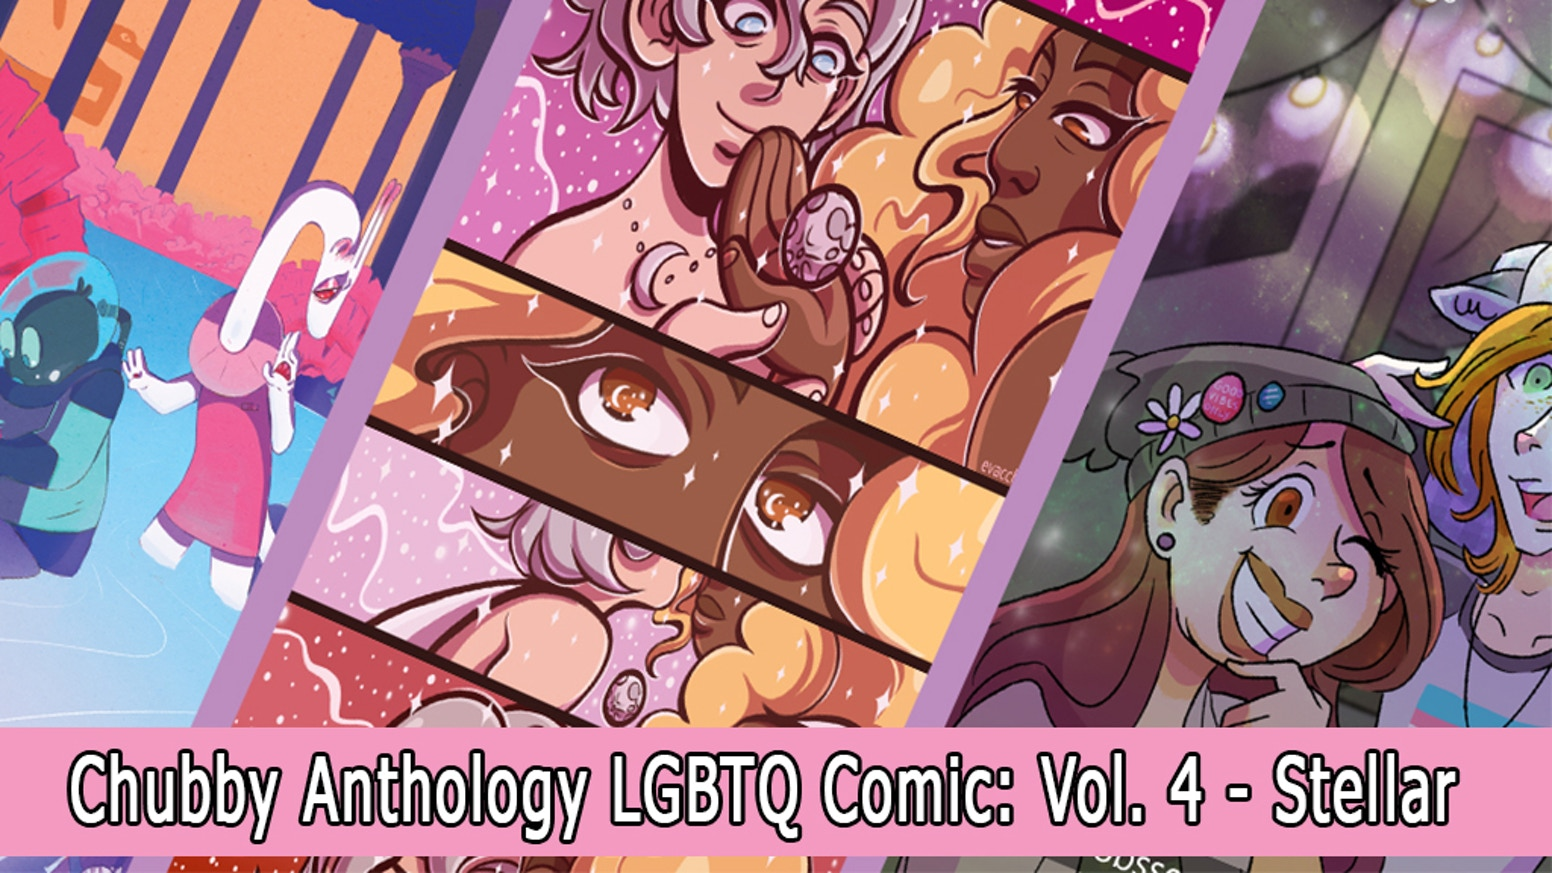 Chubby Anthology is a LGBT+ and body positive quarterly zine, featuring the works of various talented artists, worldwide!